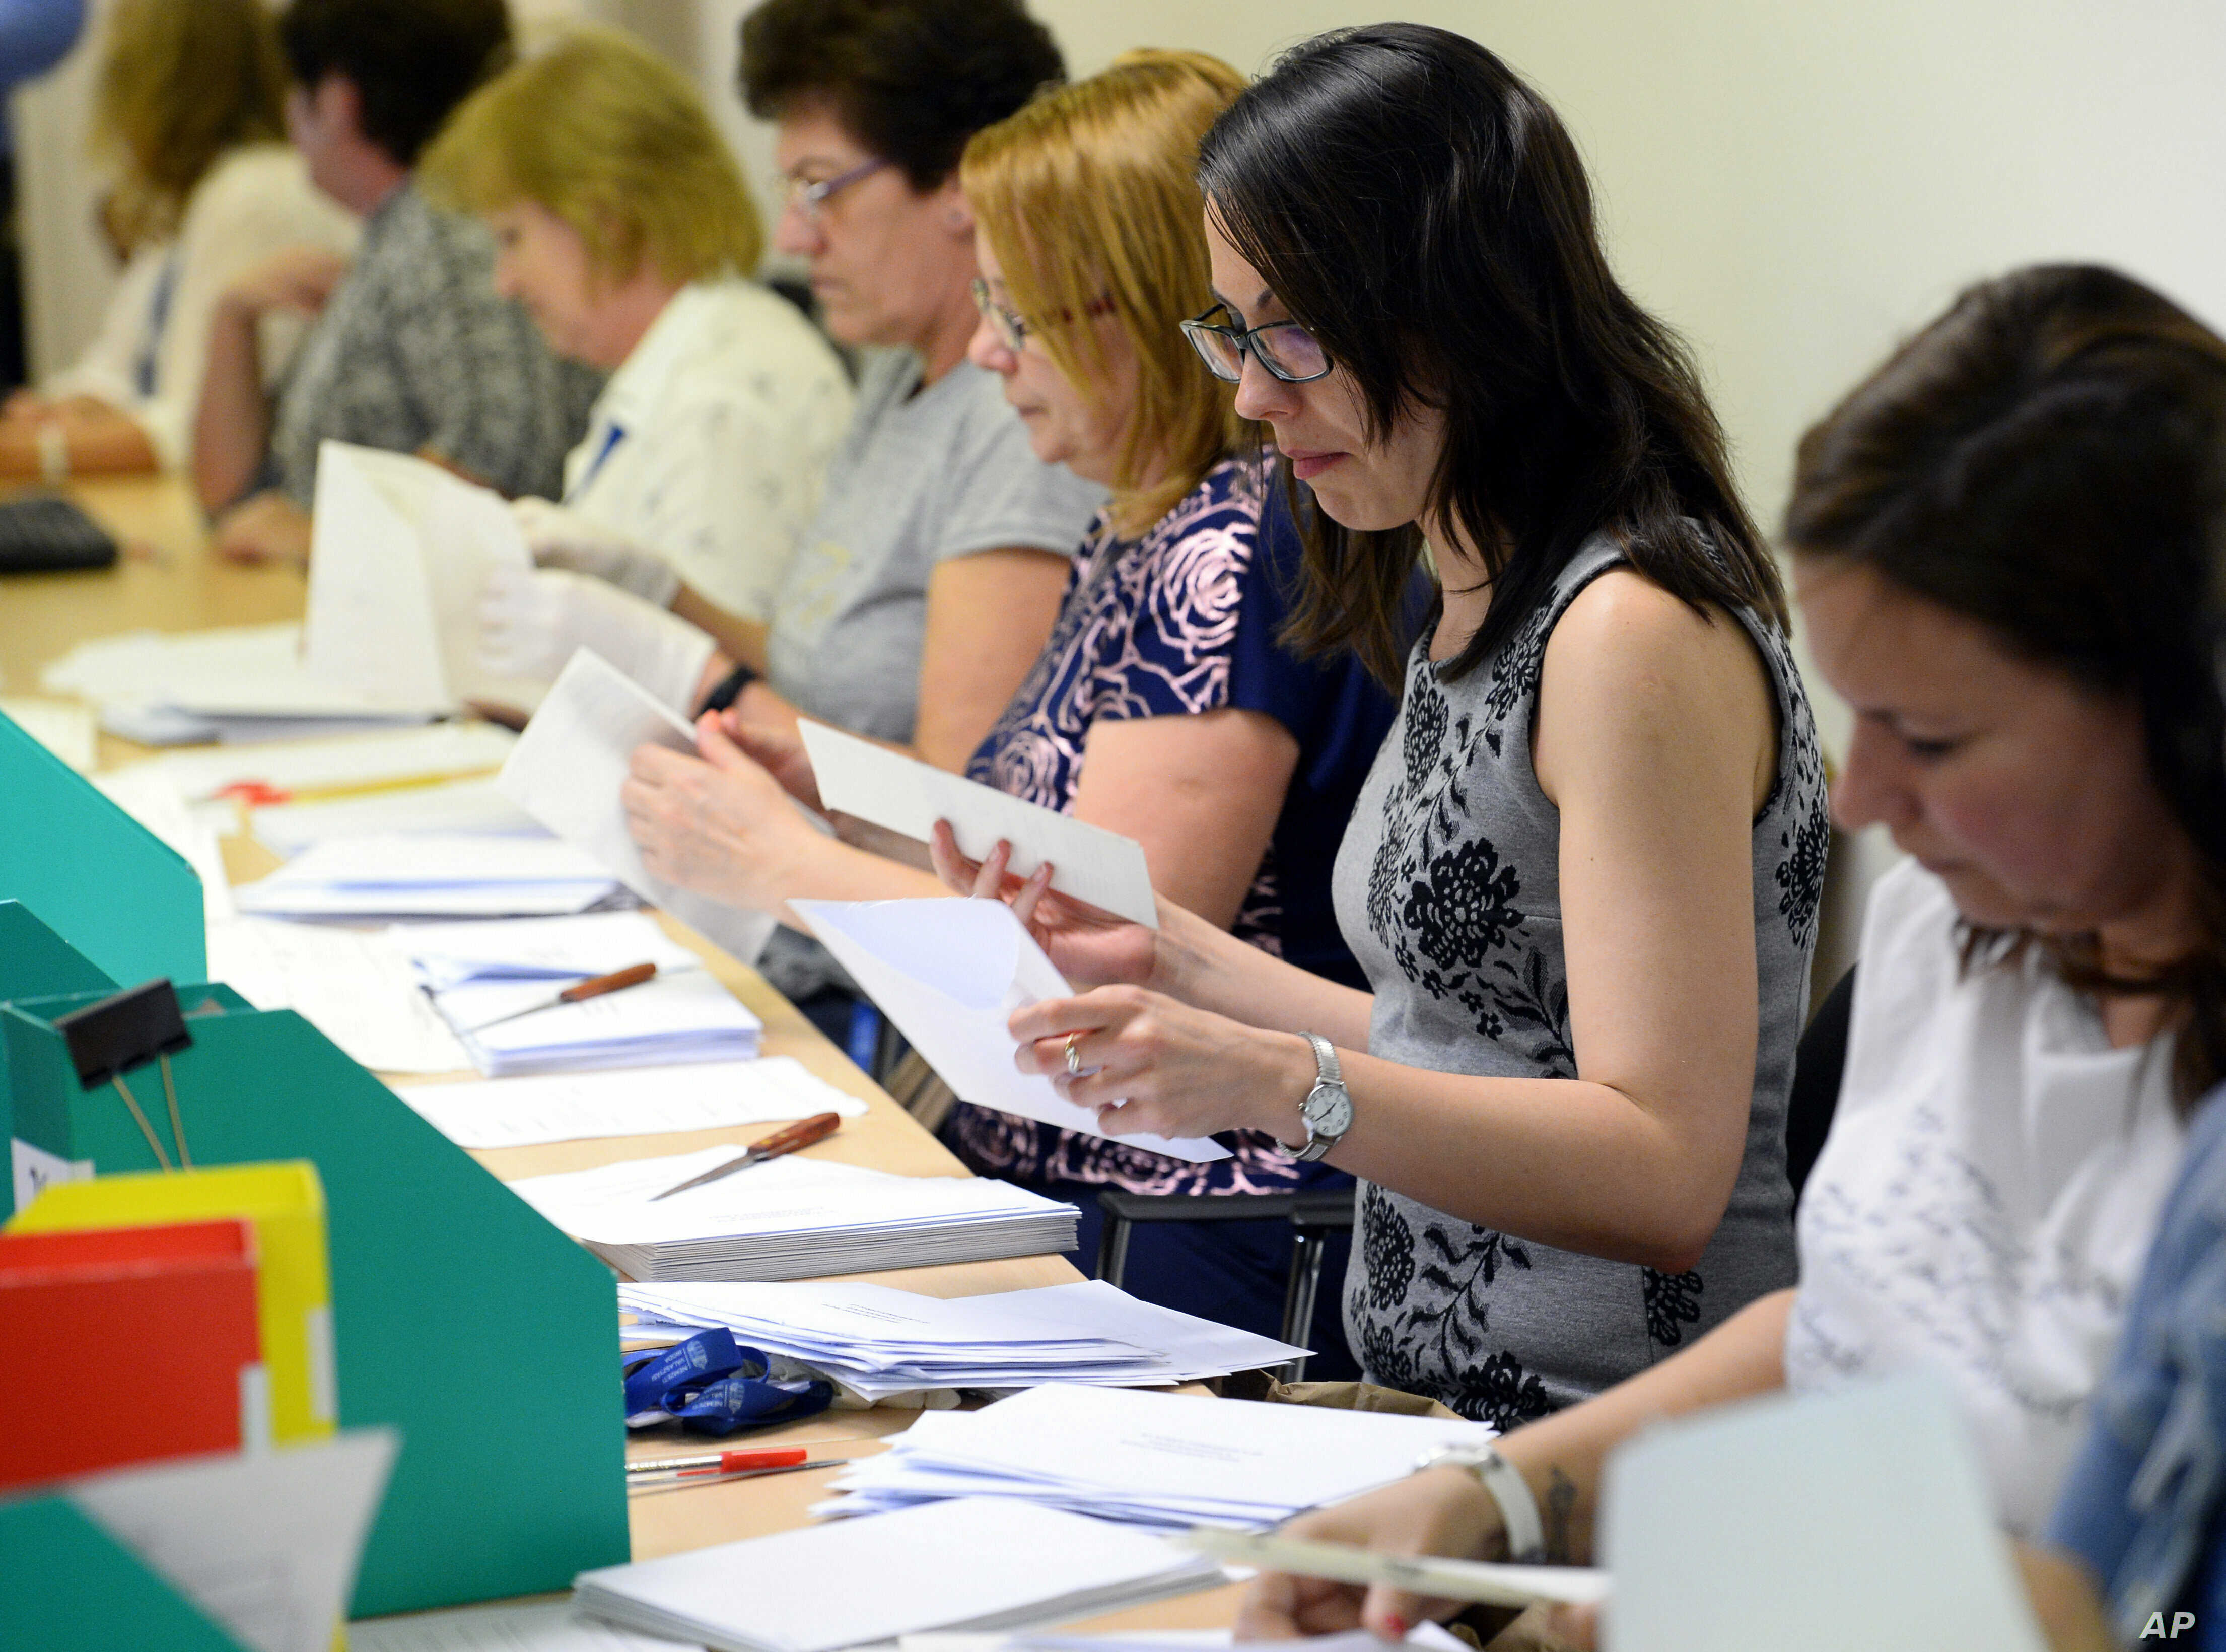 Election workers count mail-in ballots at the conclusion of European elections in Budapest, Hungary, May 26, 2019.